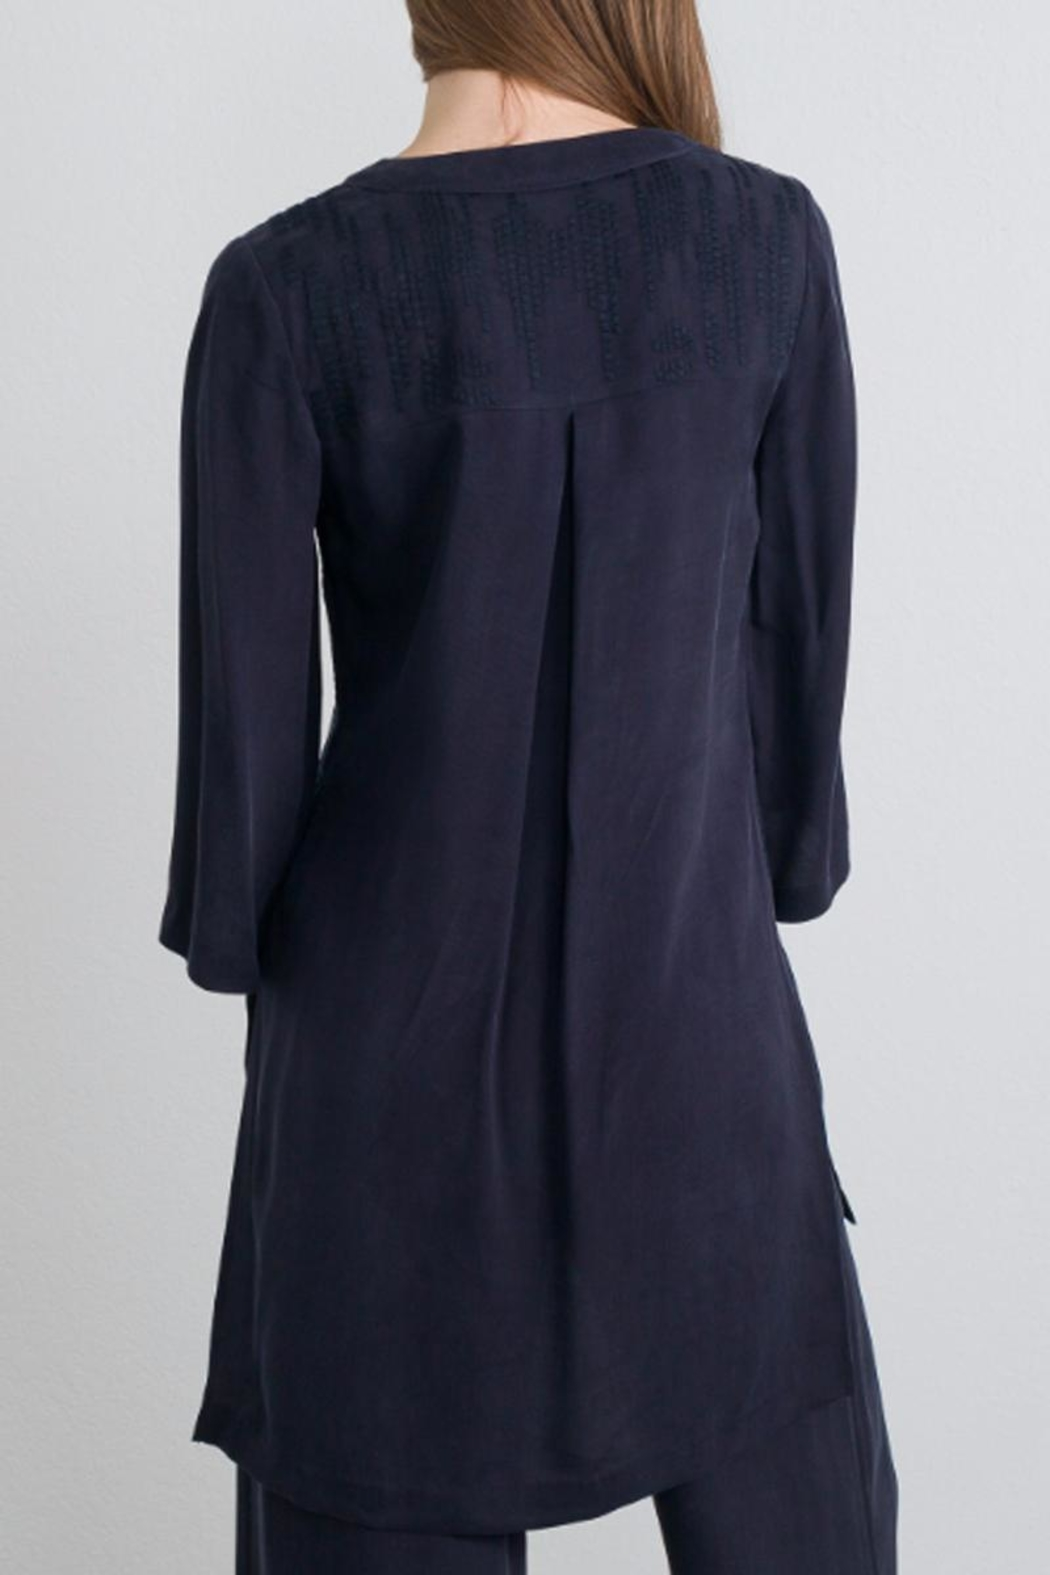 QUINN Embroidered Tunic Top - Front Full Image